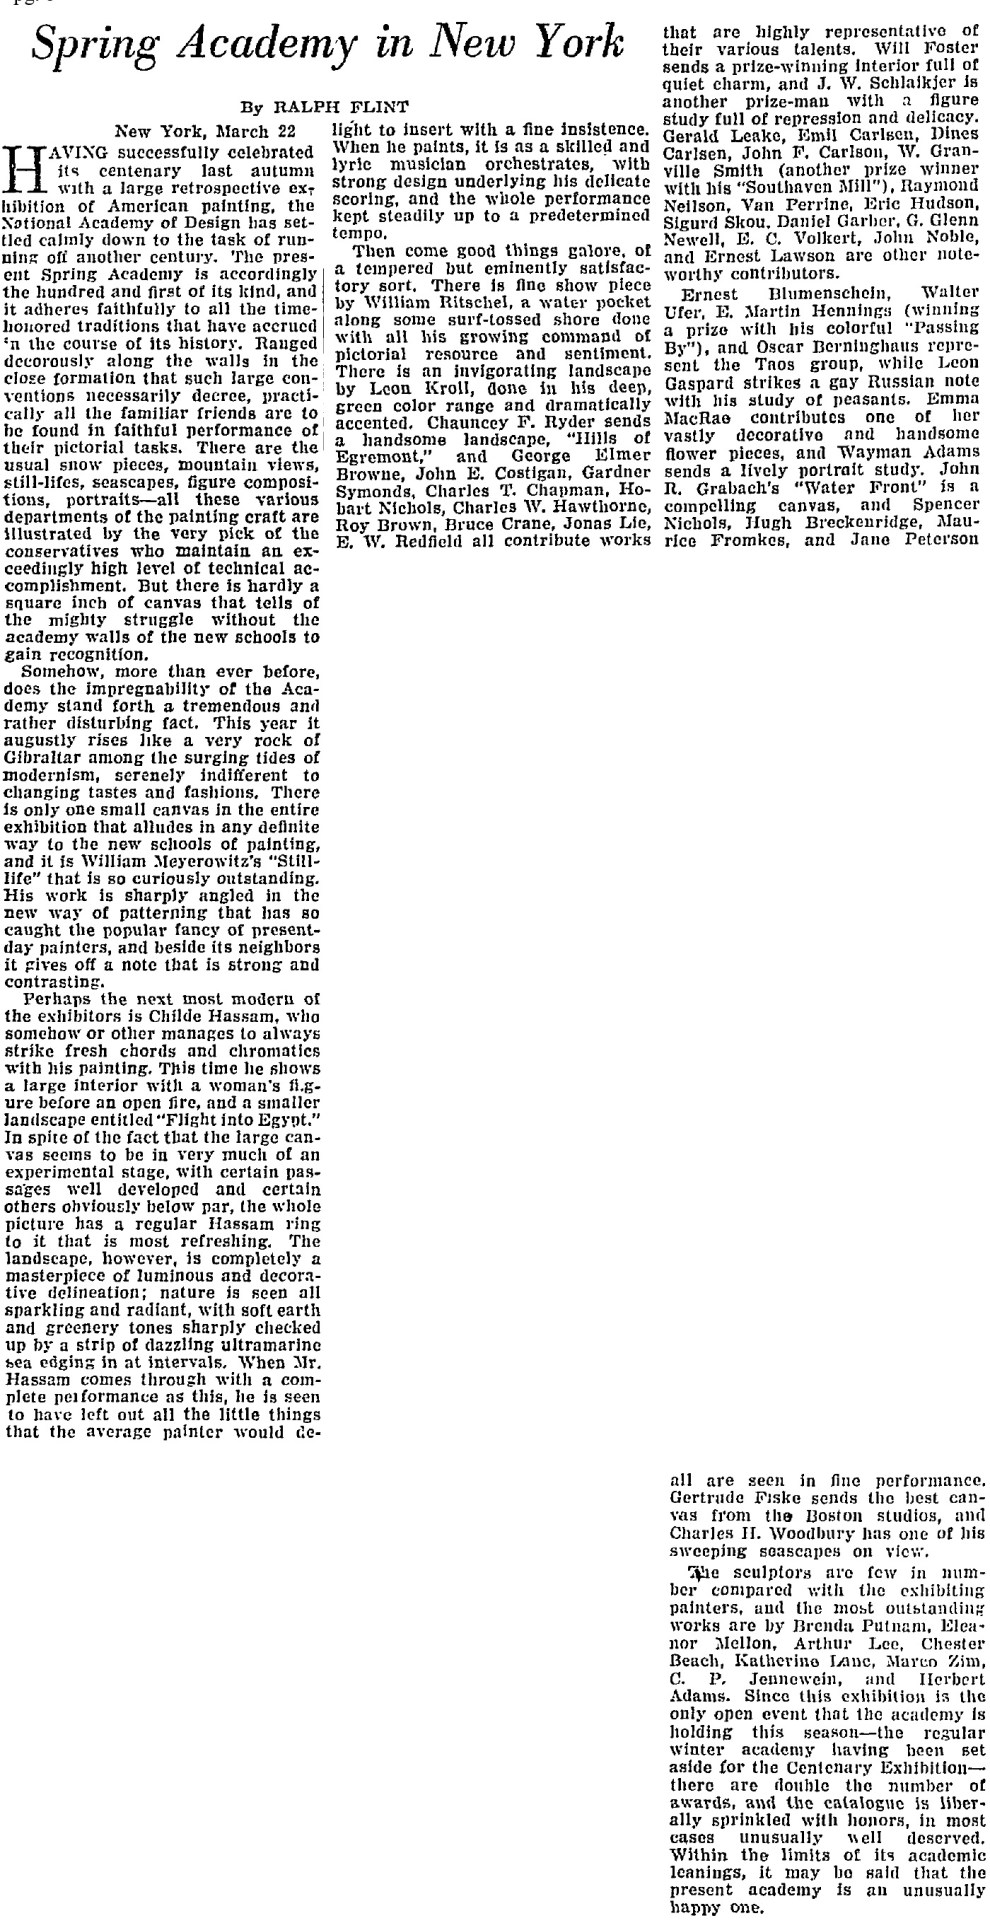 "The Christian Science Monitor, New York, NY, ""Spring Academy in New York"" by Ralph Flint, March 26, 1926, page 8, not illustrated"